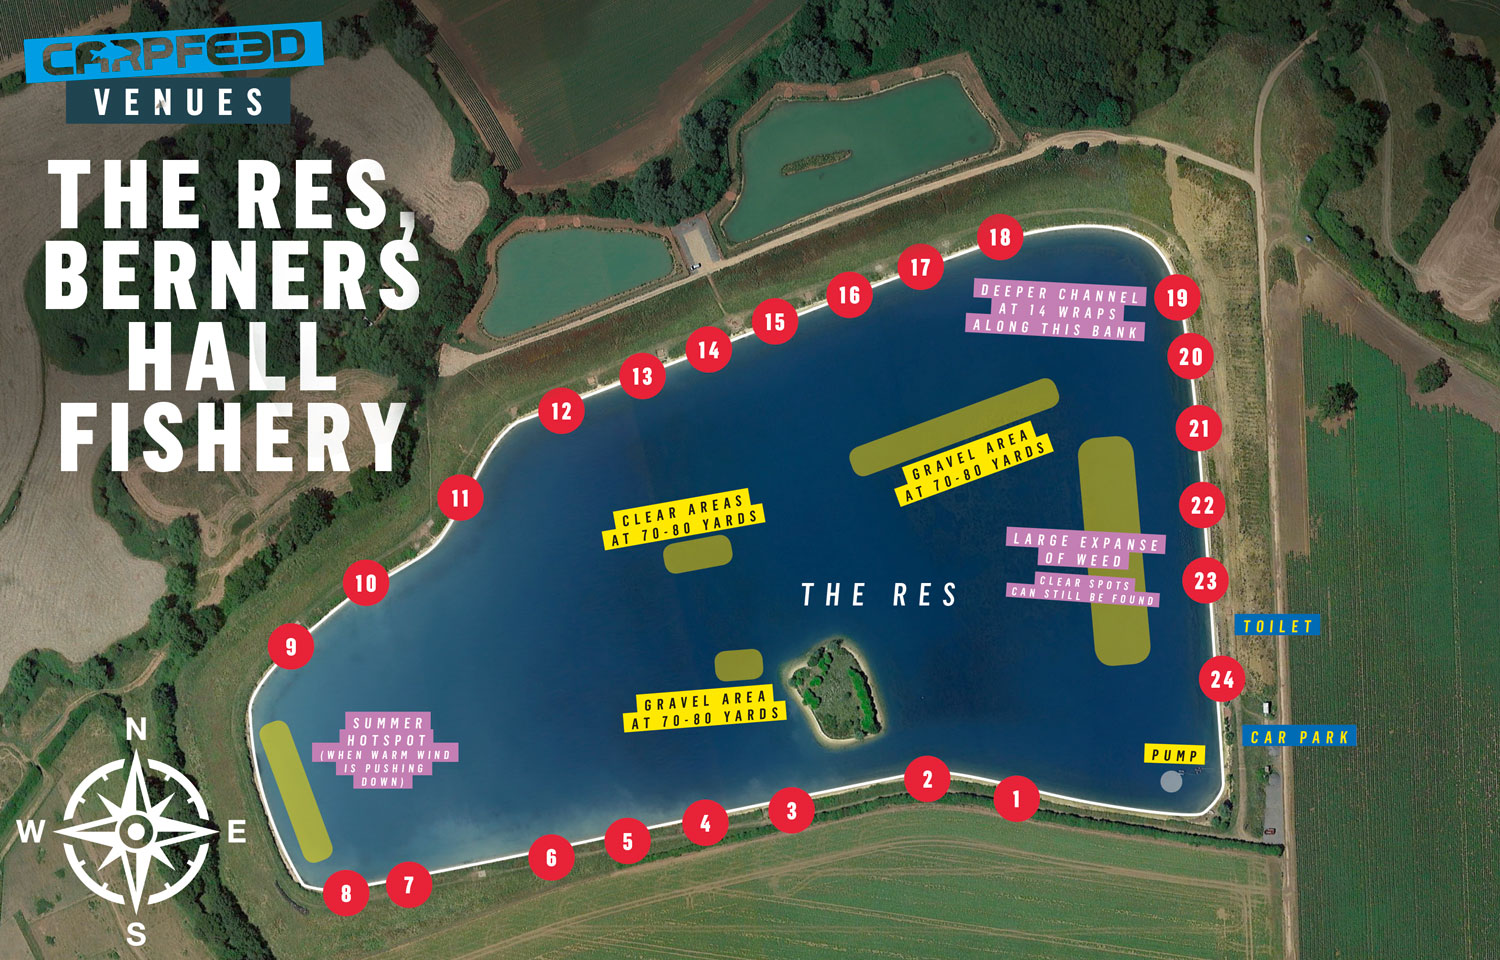 Berners Hall Reservoir Map And Tactics Guide Carpfeed